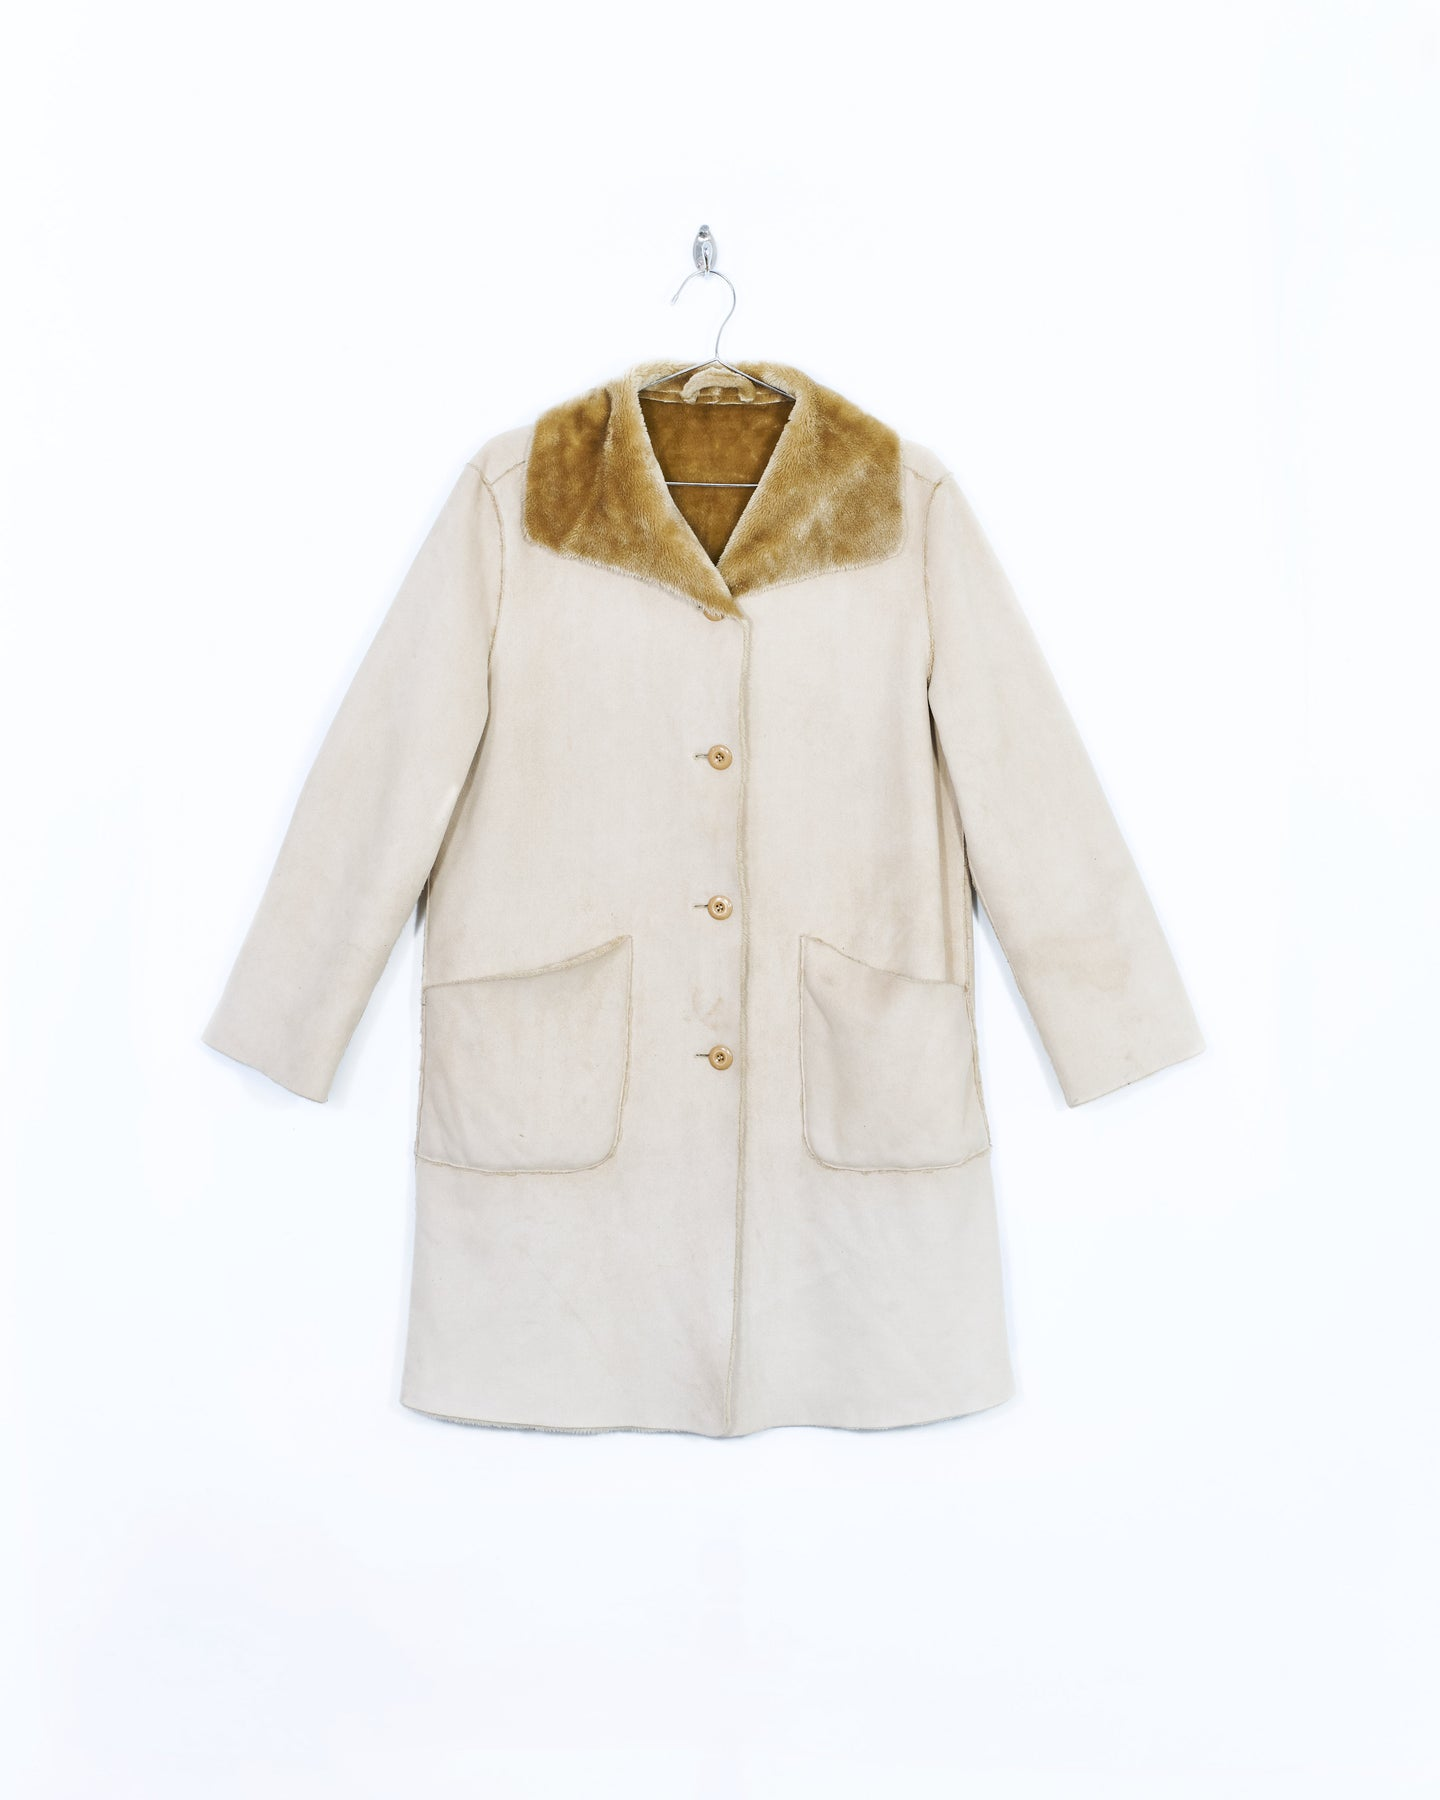 Soft London Fog Coat